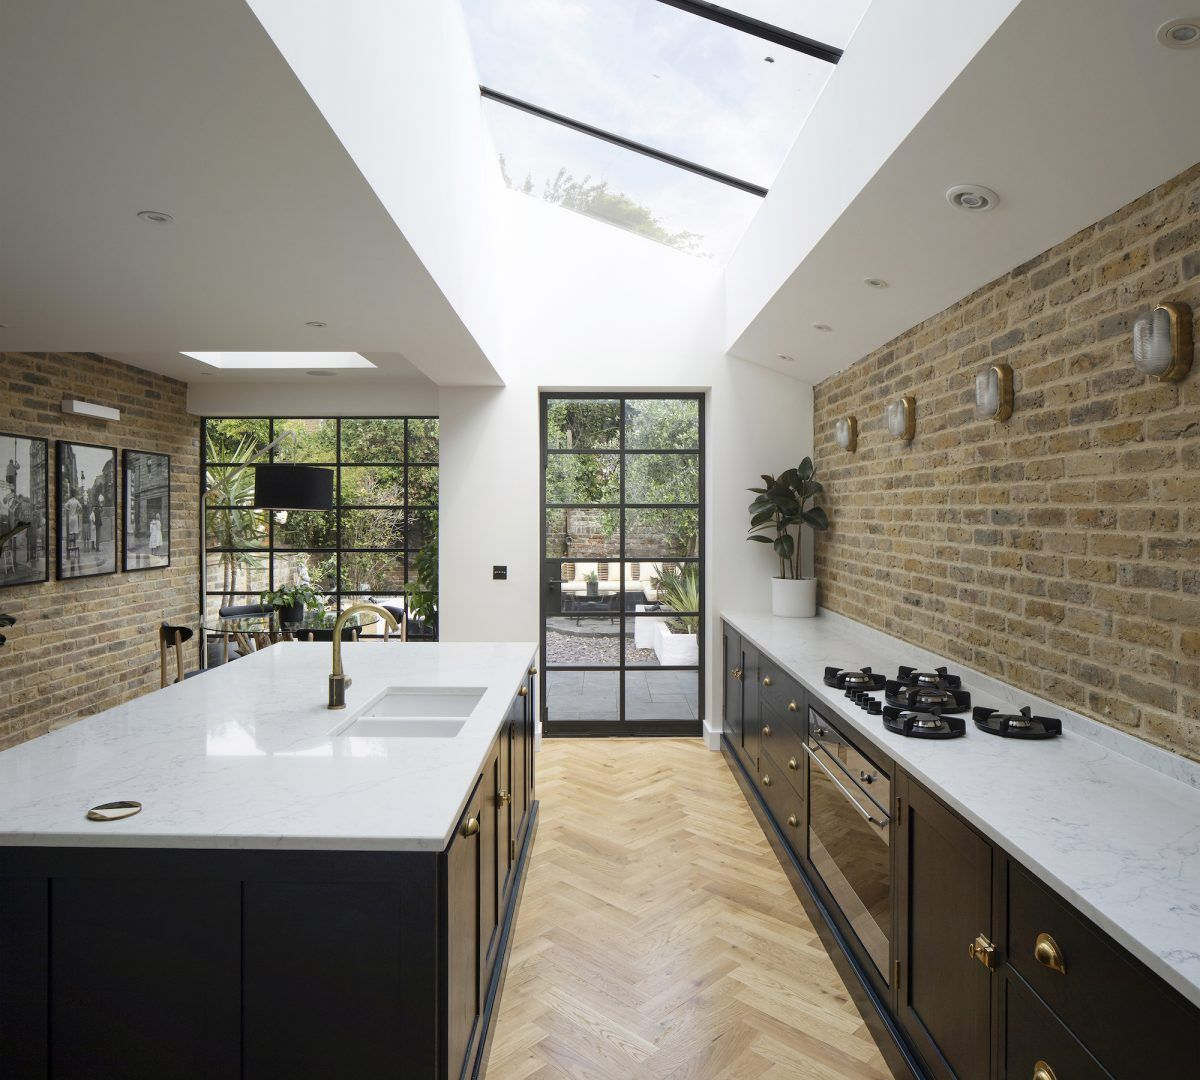 Woody London N16 Quirky Contemporary With Images Small House Renovation Victorian